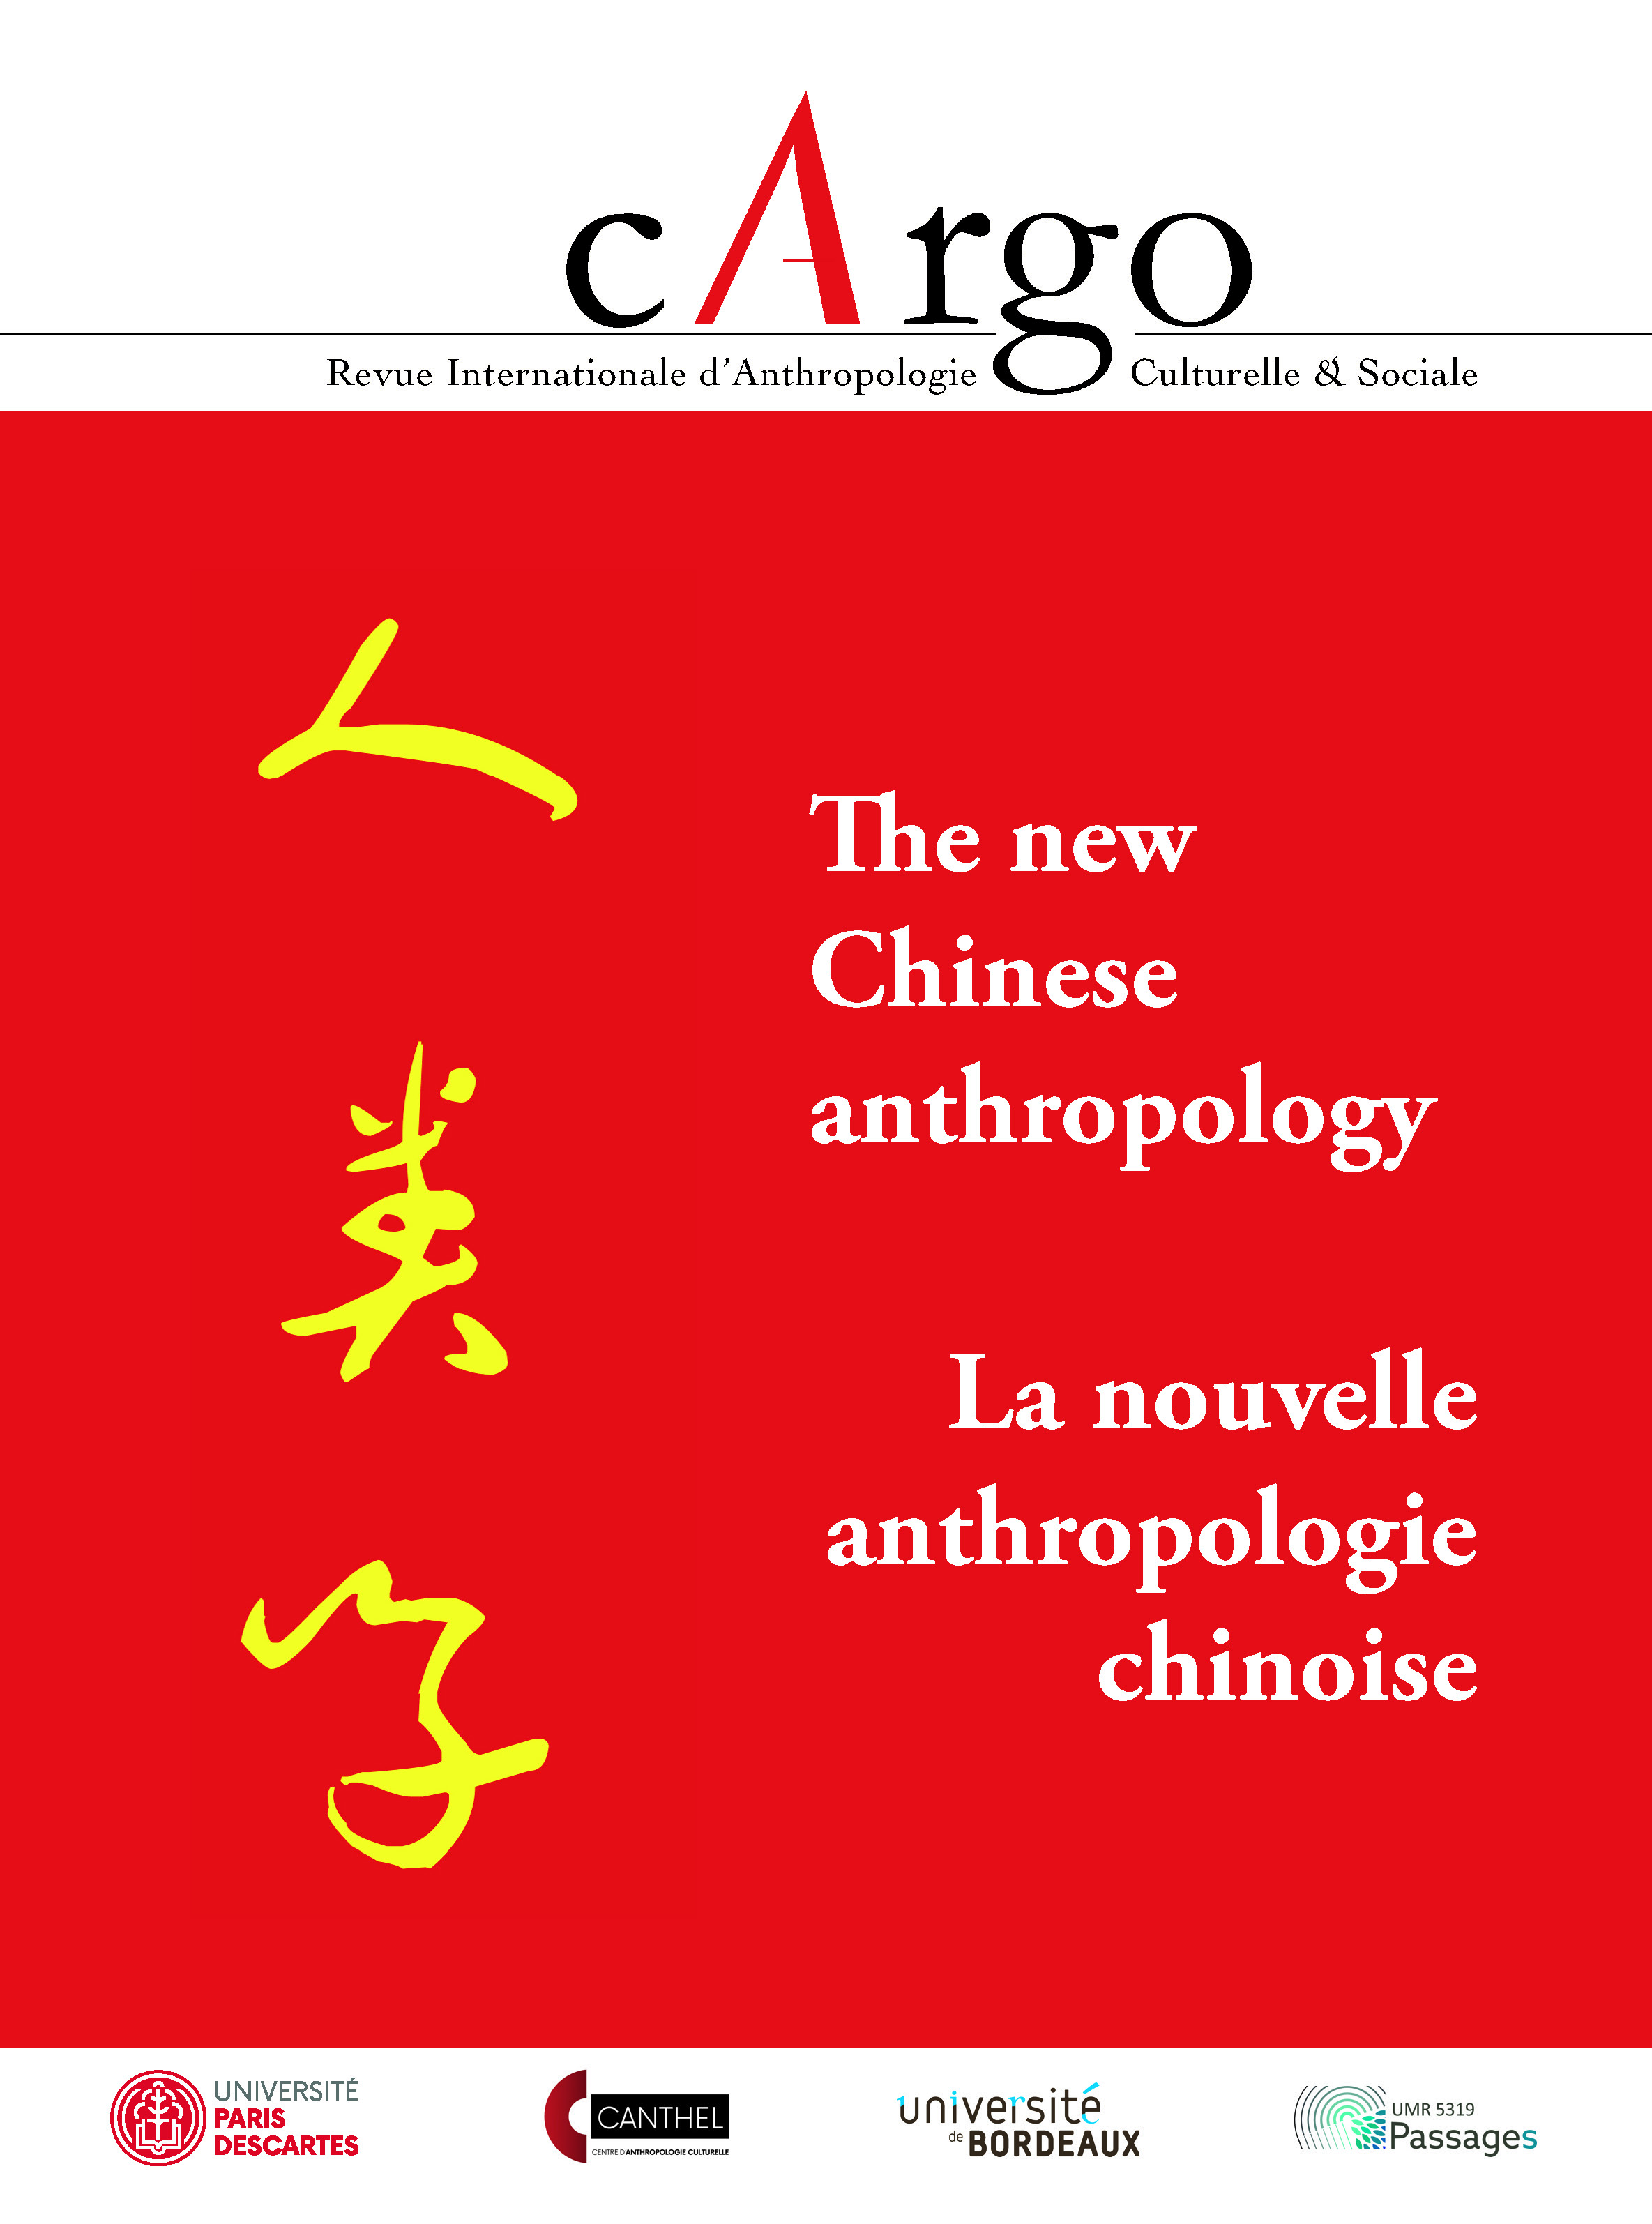 Revue cArgo #8 « The new Chinese anthropology / La nouvelle anthropologie chinoise »